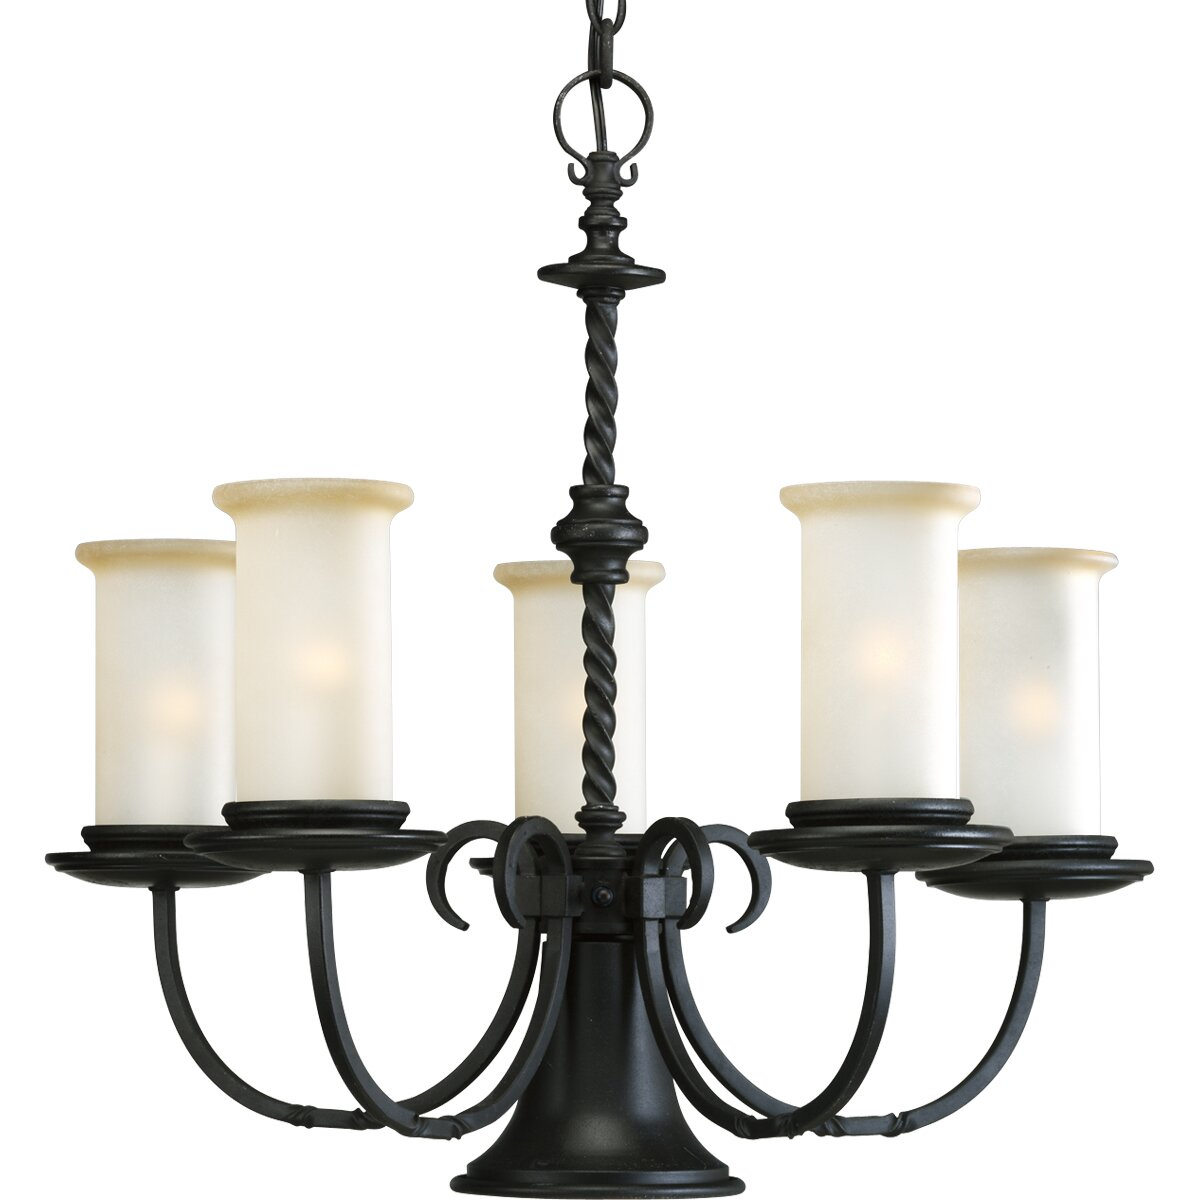 Progress lighting santiago 5 light chandelier reviews for Thomasville lights